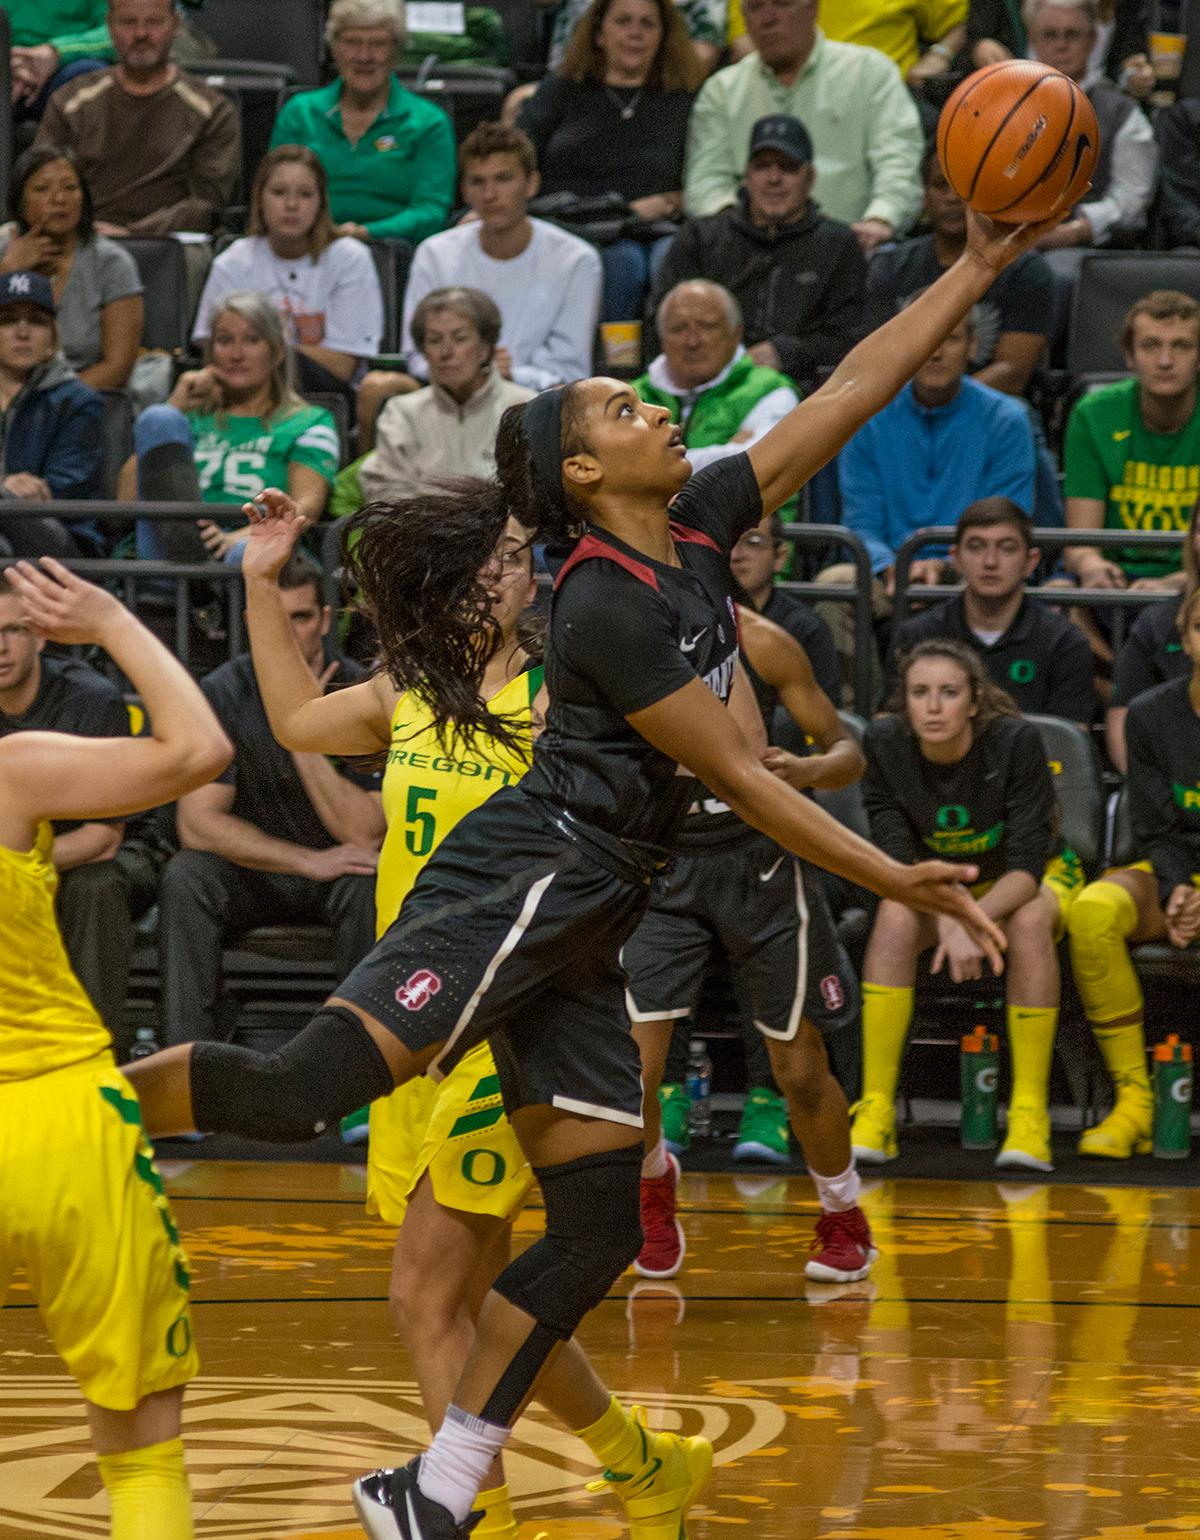 Stanford Cardinal DiJonai Carrington (#21) goes up for two against the Oregon Ducks. The Stanford Cardinal defeated the Oregon Ducks 78-65 on Sunday afternoon at Matthew Knight Arena. Stanford is now 10-2 in conference play and with this loss the Ducks drop to 10-2. Leading the Stanford Cardinal was Brittany McPhee with 33 points, Alanna Smith with 14 points, and Kiana Williams with 14 points. For the Ducks Sabrina Ionescu led with 22 points, Ruthy Hebard added 16 points, and Satou Sabally put in 14 points. Photo by Dan Morrison, Oregon News Lab